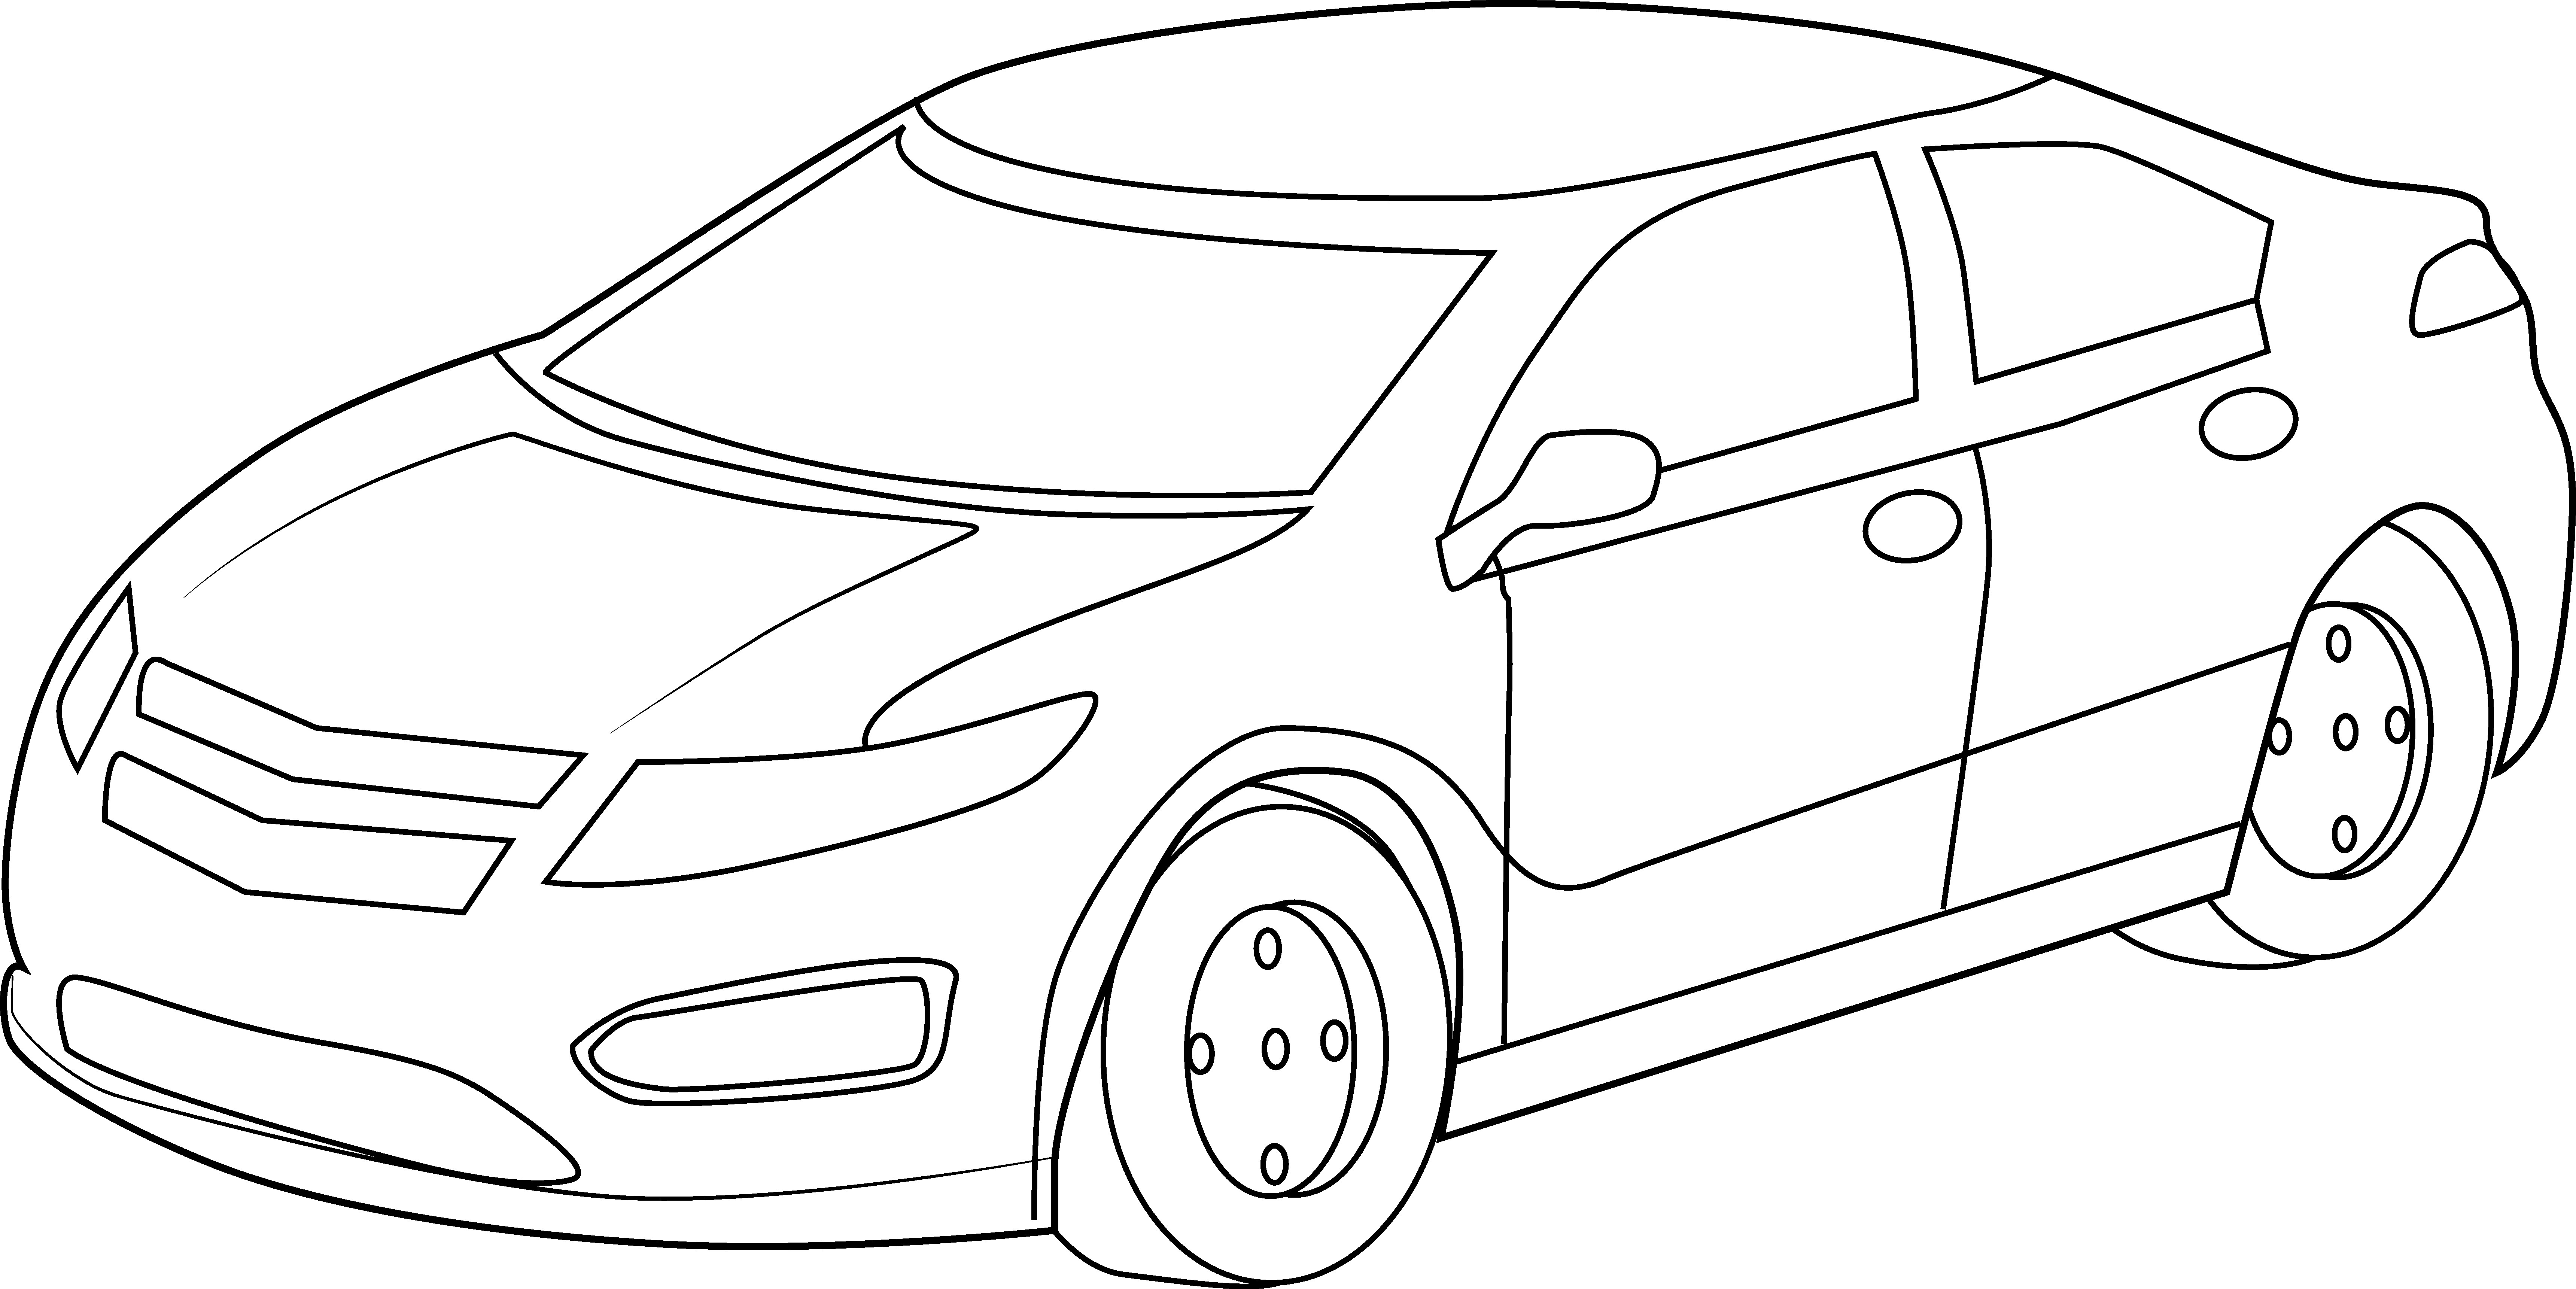 sports car drawing outline at getdrawings com free for personal rh getdrawings com car clipart black and white outline car clipart black and white vector